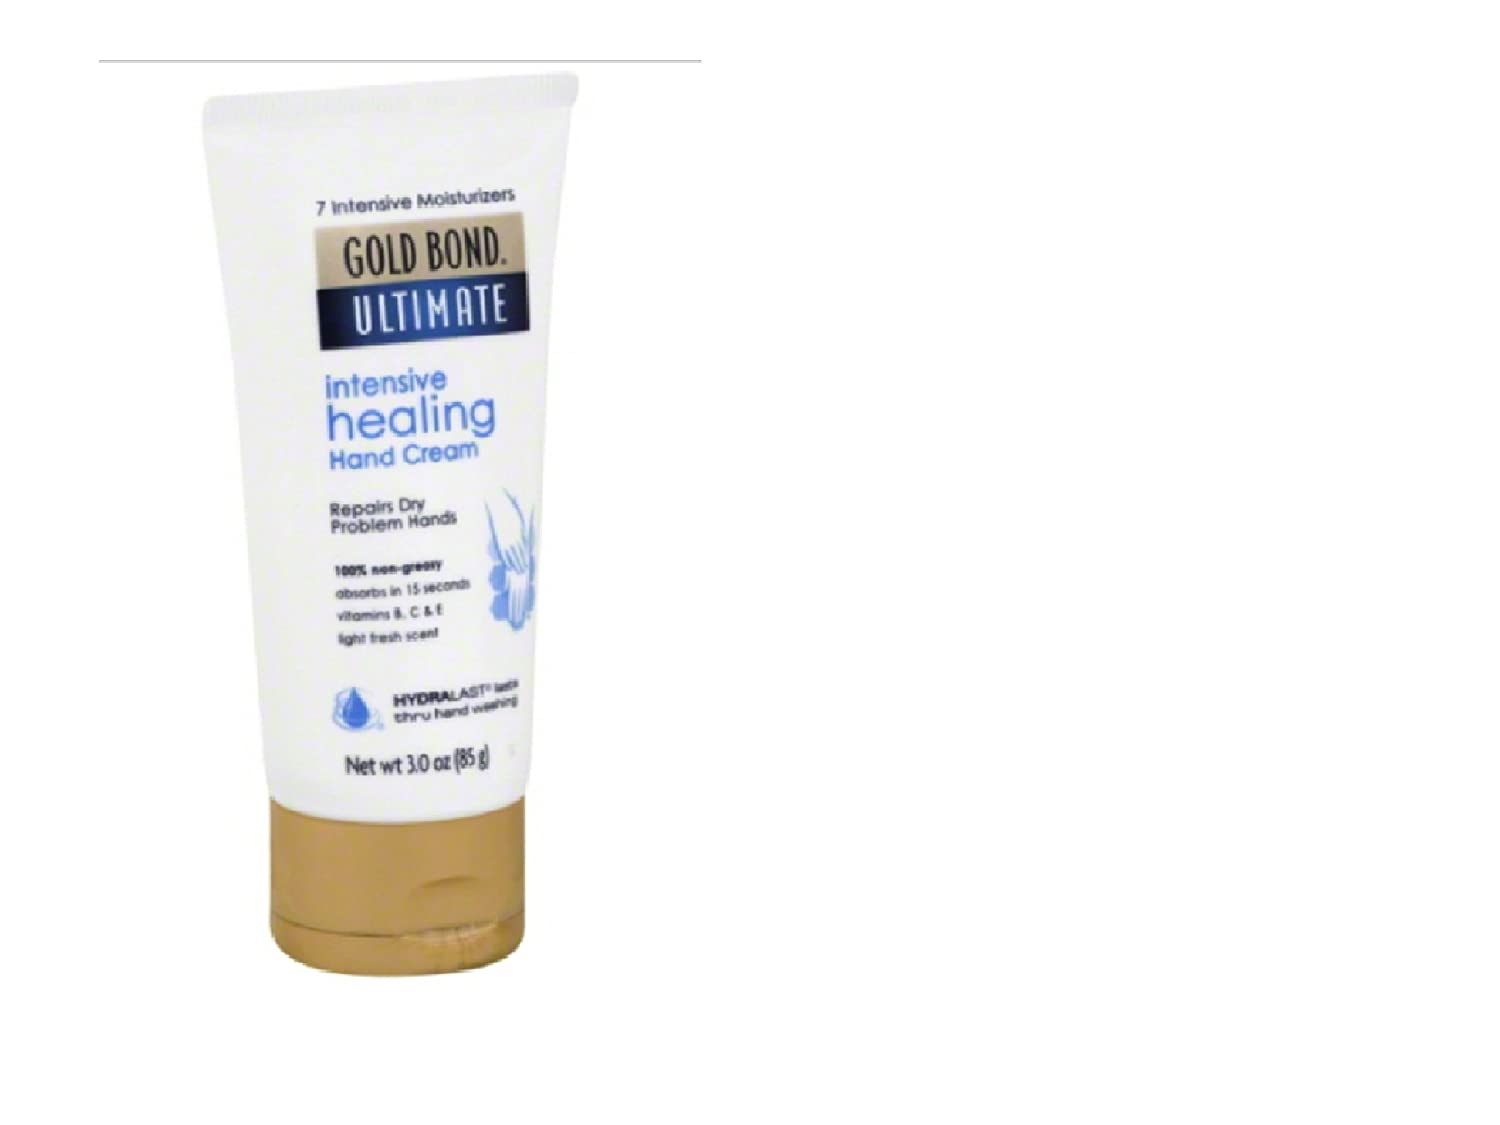 Gold Bond Ultimate Intensive Healing Hand Cream - 3 oz at Sears.com